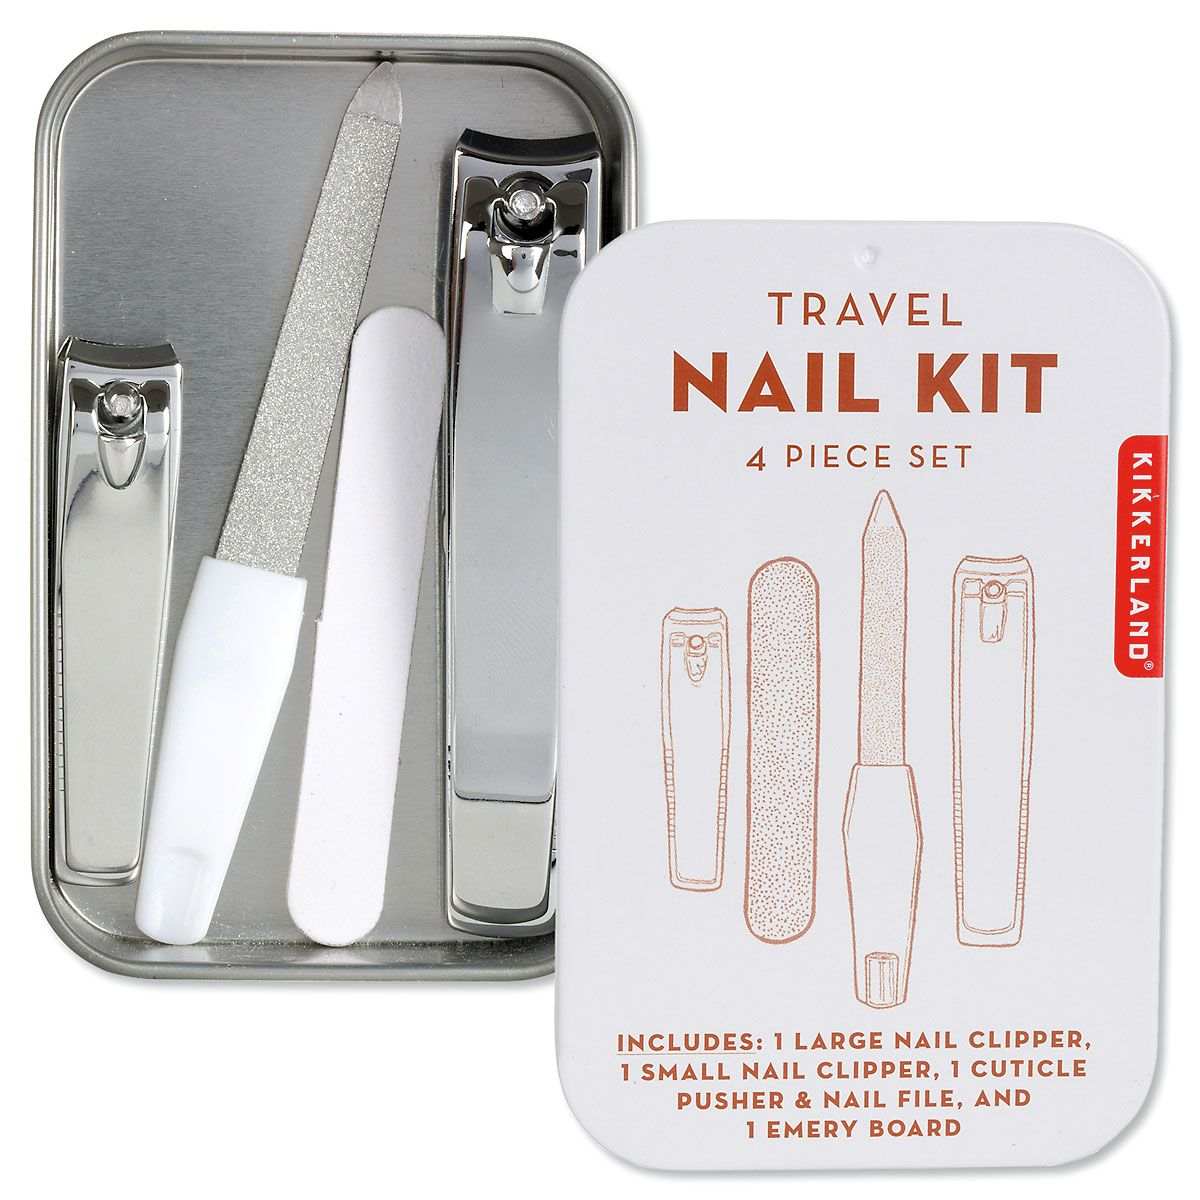 4-Piece Travel Nail Kit